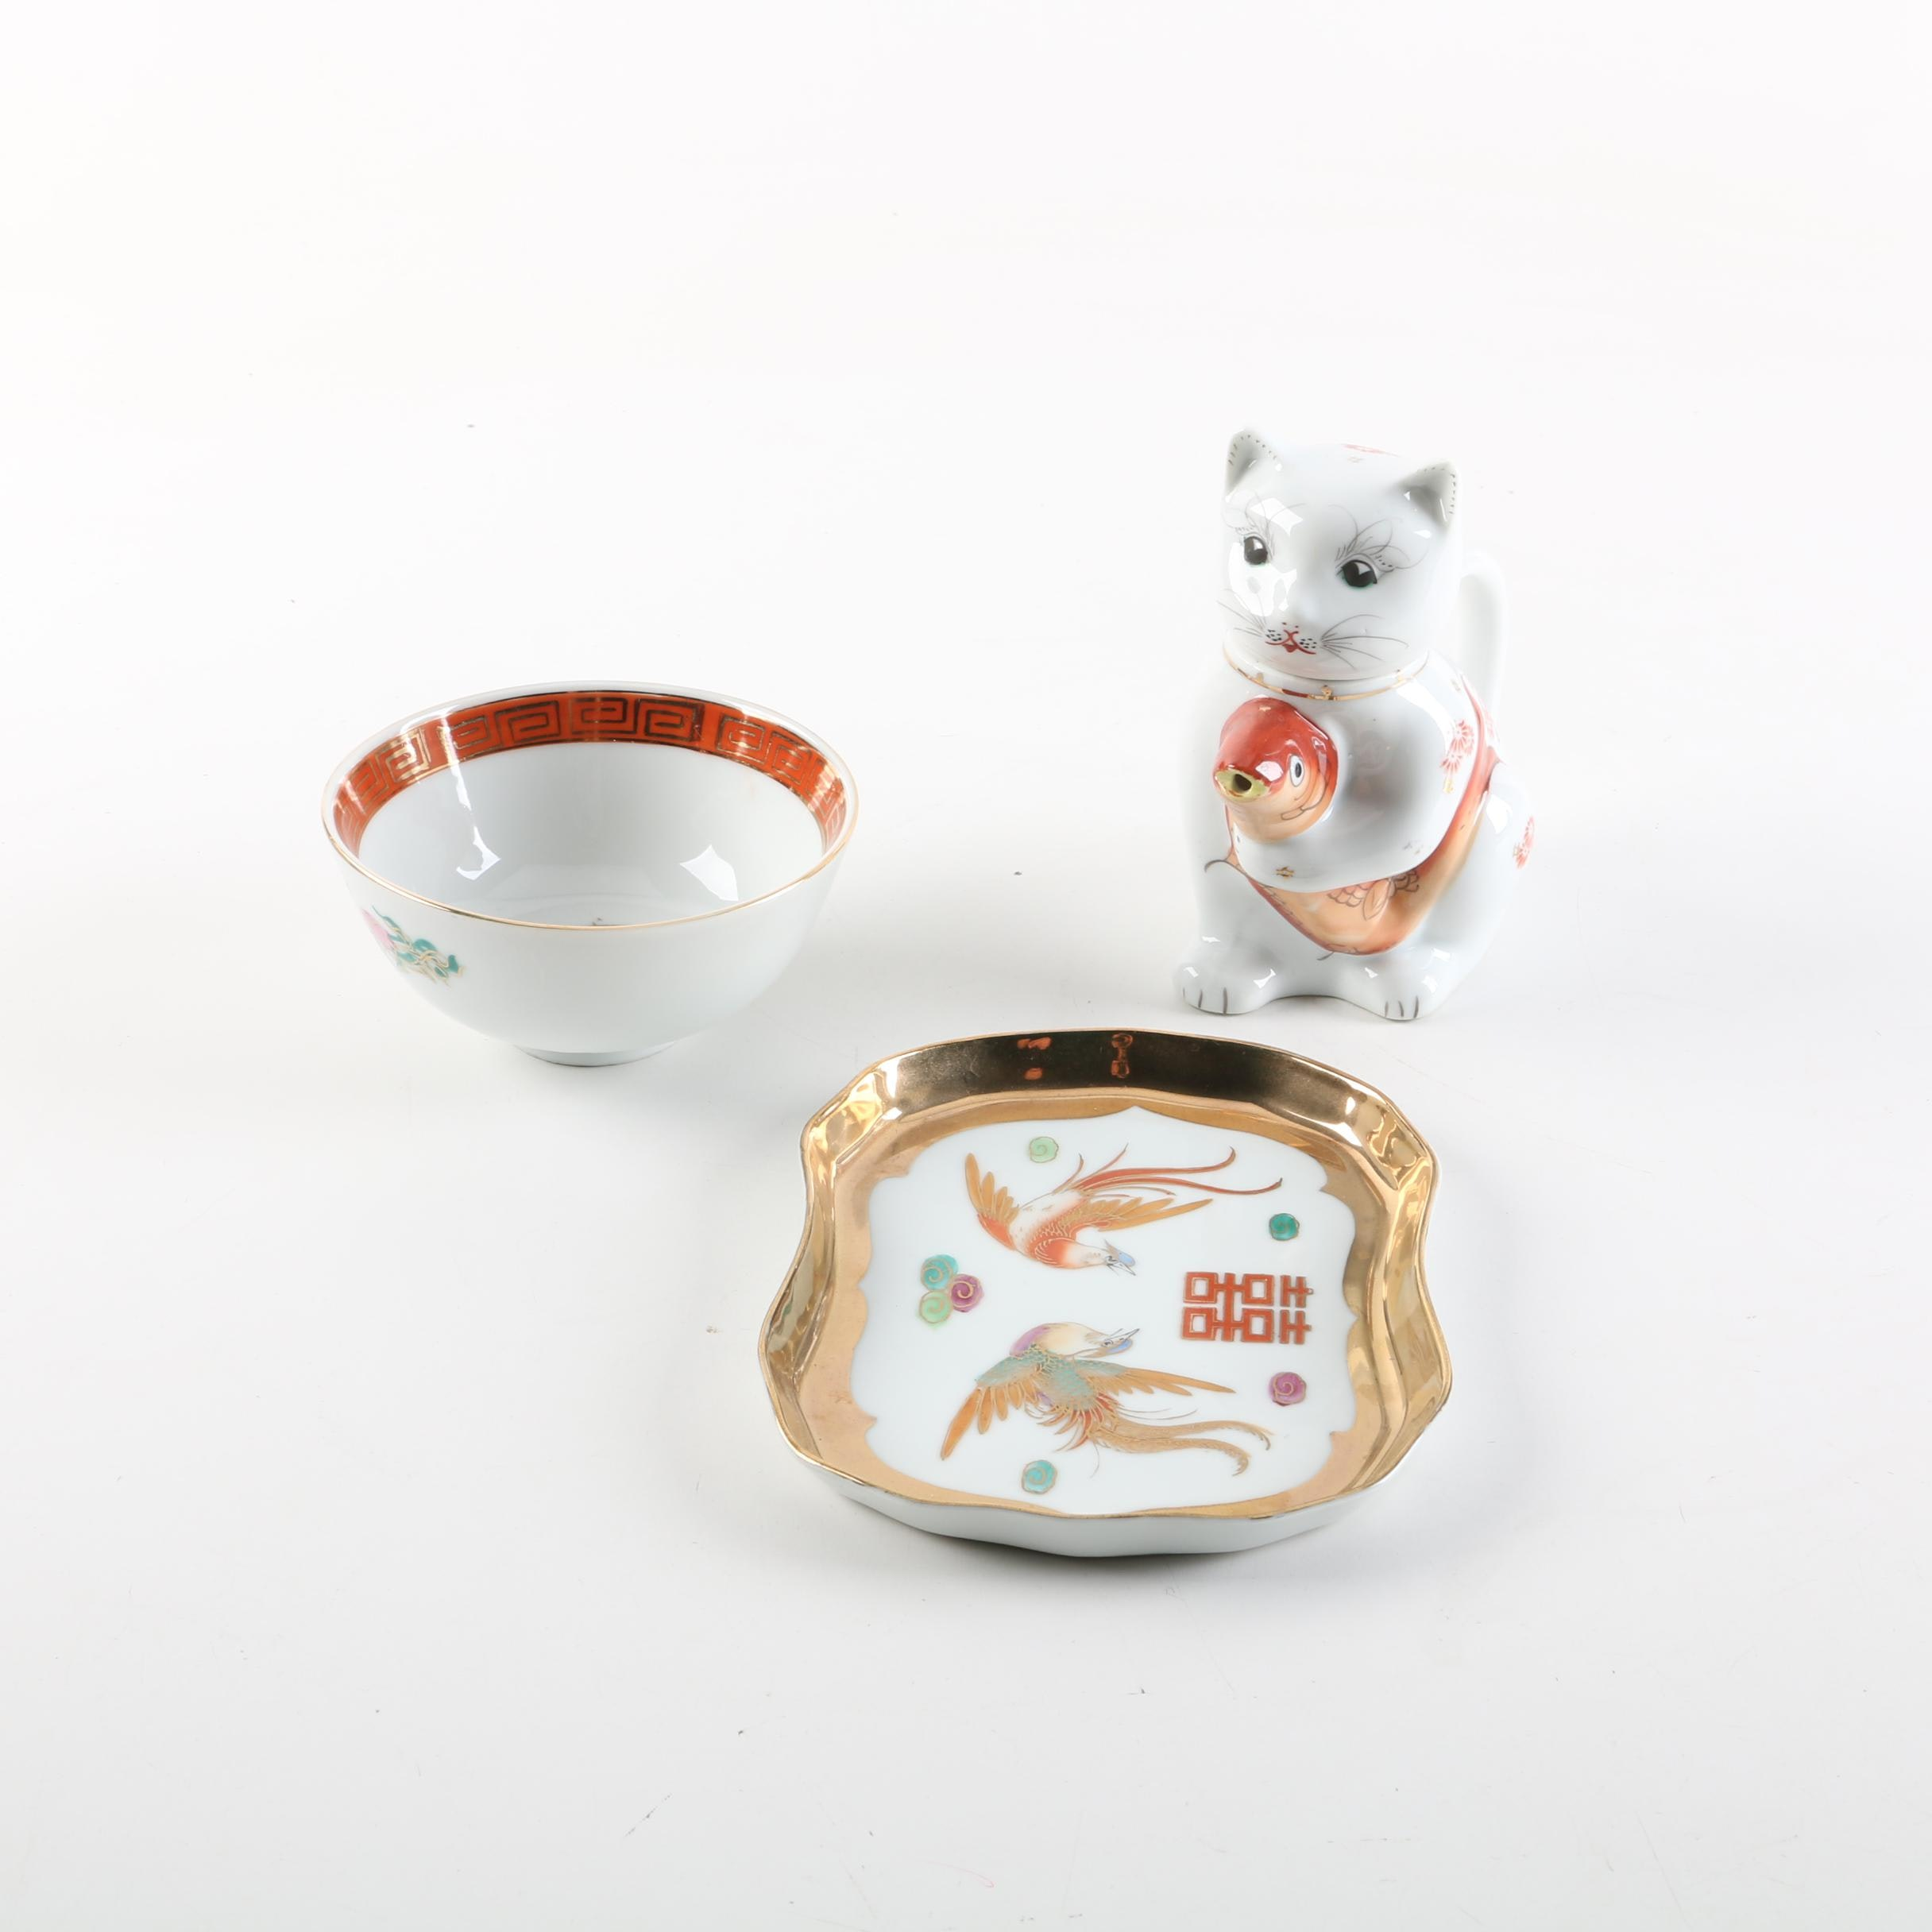 Chinese Porcelain Teapot and Tableware